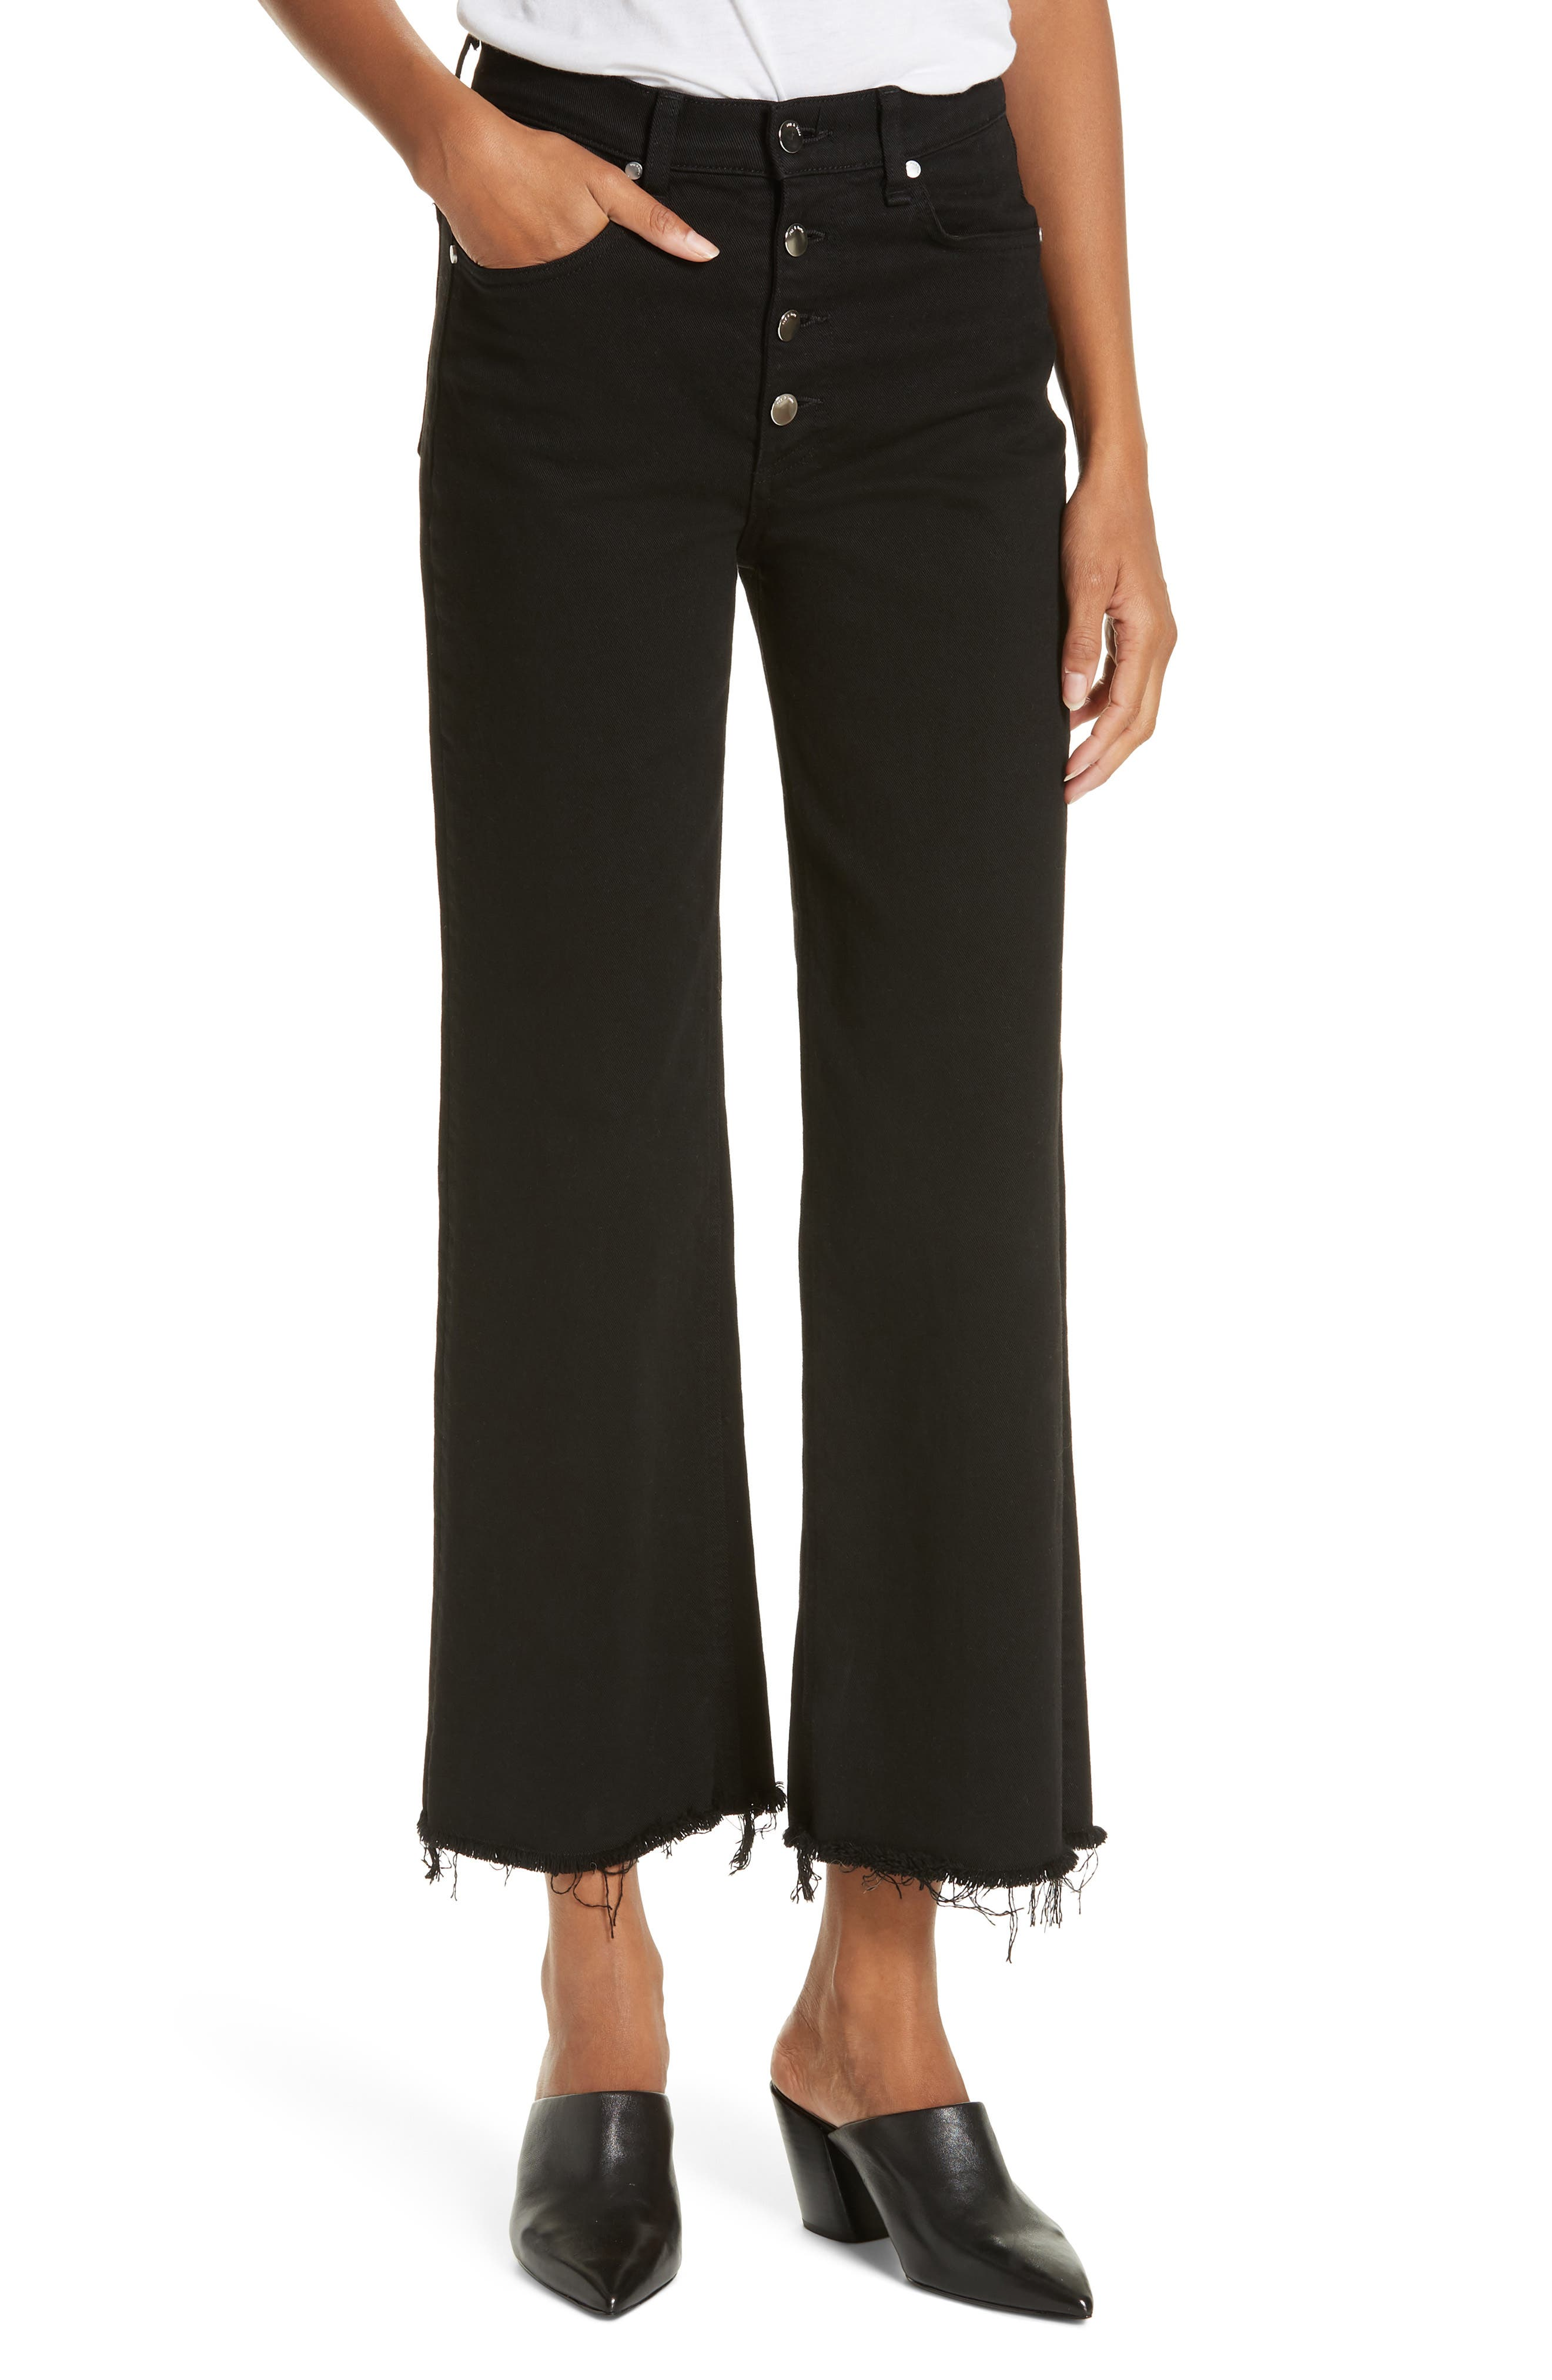 RAG & BONE,                             Justine High Waist Cutoff Wide Leg Jeans,                             Main thumbnail 1, color,                             BLACK